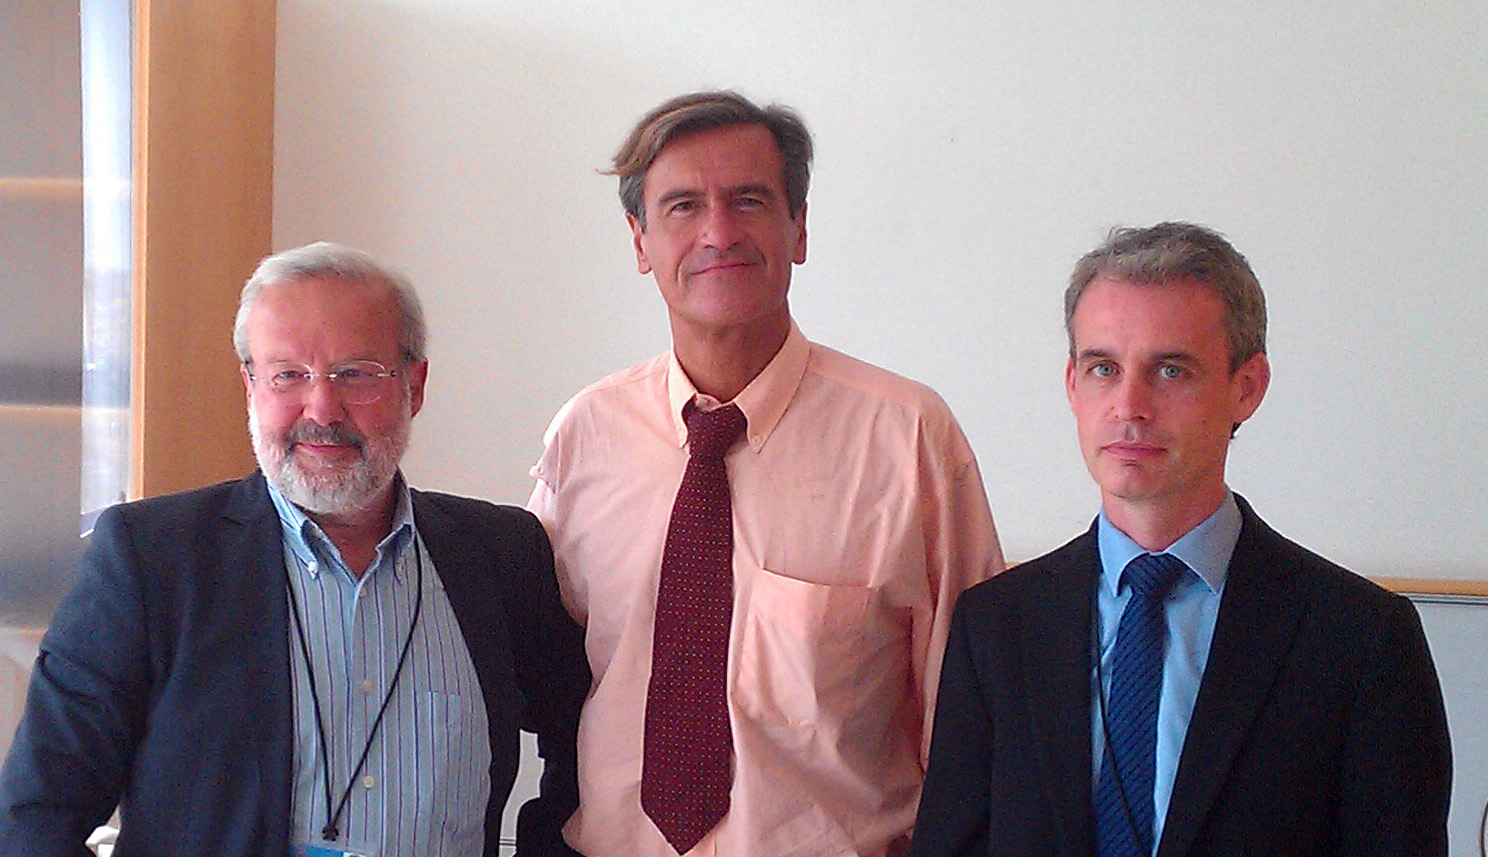 Emilio De Capitani (left) and Joe McNamee (right) with Civil Liberties Committee President Juan Fernando López Aguilar after their meeting on upcoming Parliament work on mass surveillance of EU citizens.